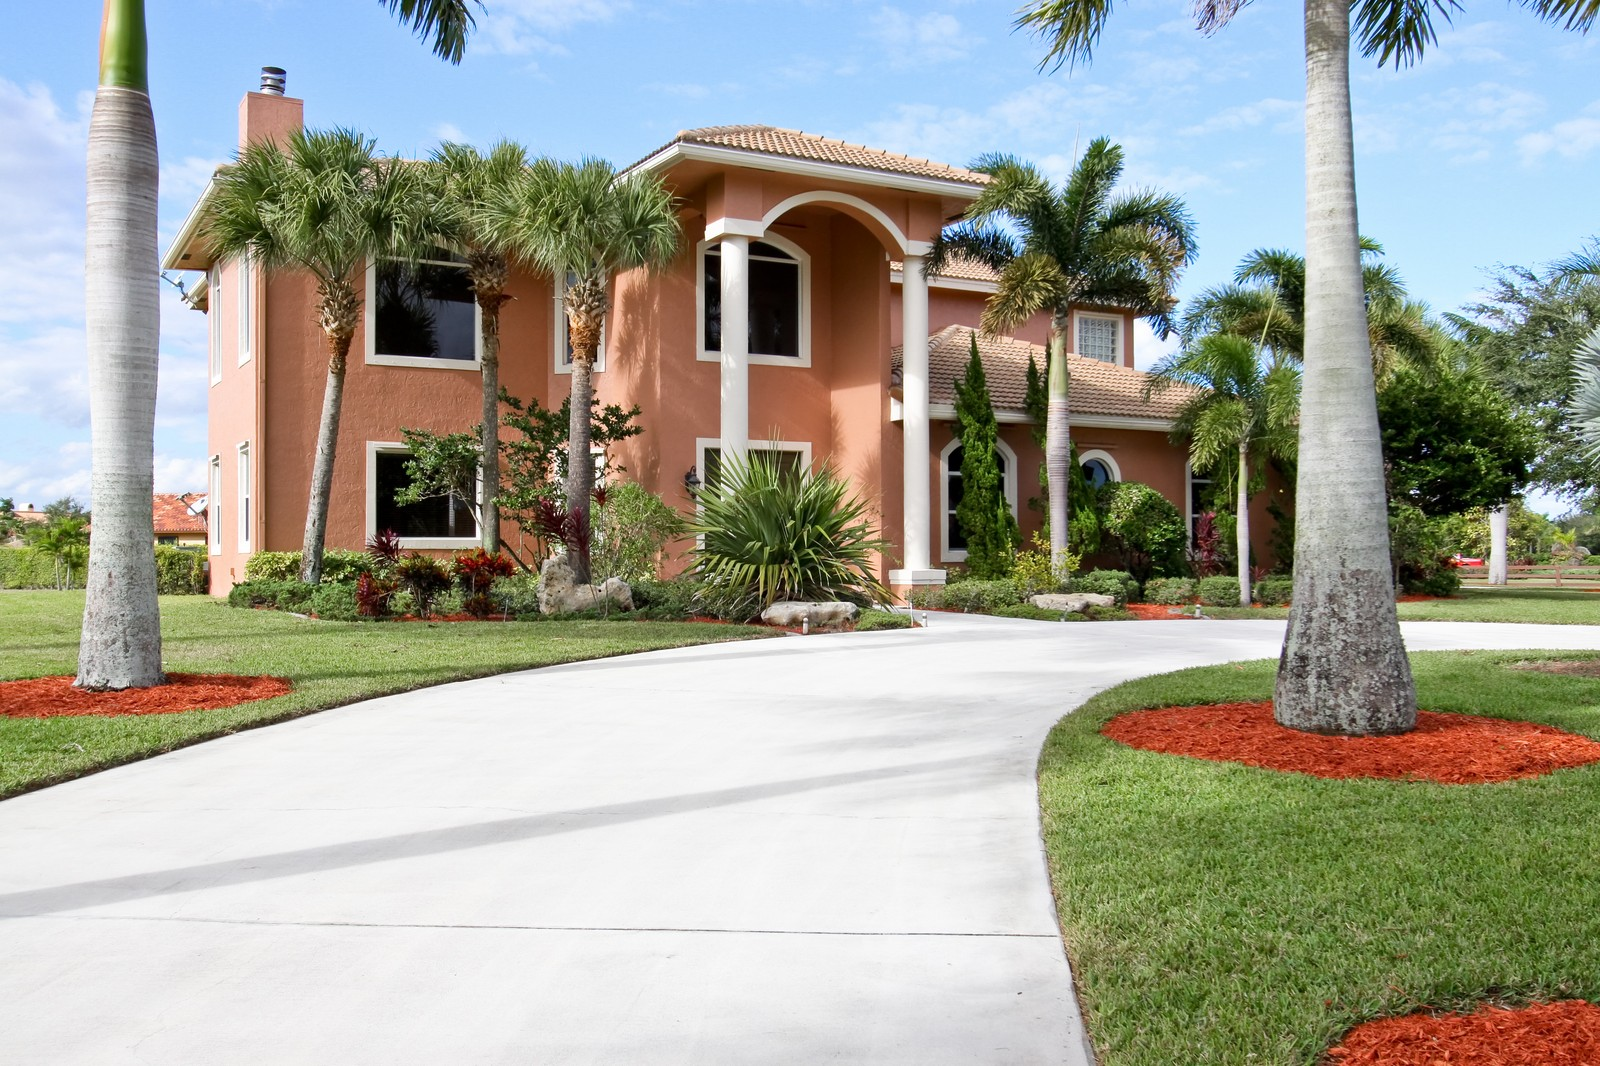 Real Estate Photography - 14542 Draft Horse Ln, Wellington, FL, 33414 - Front View